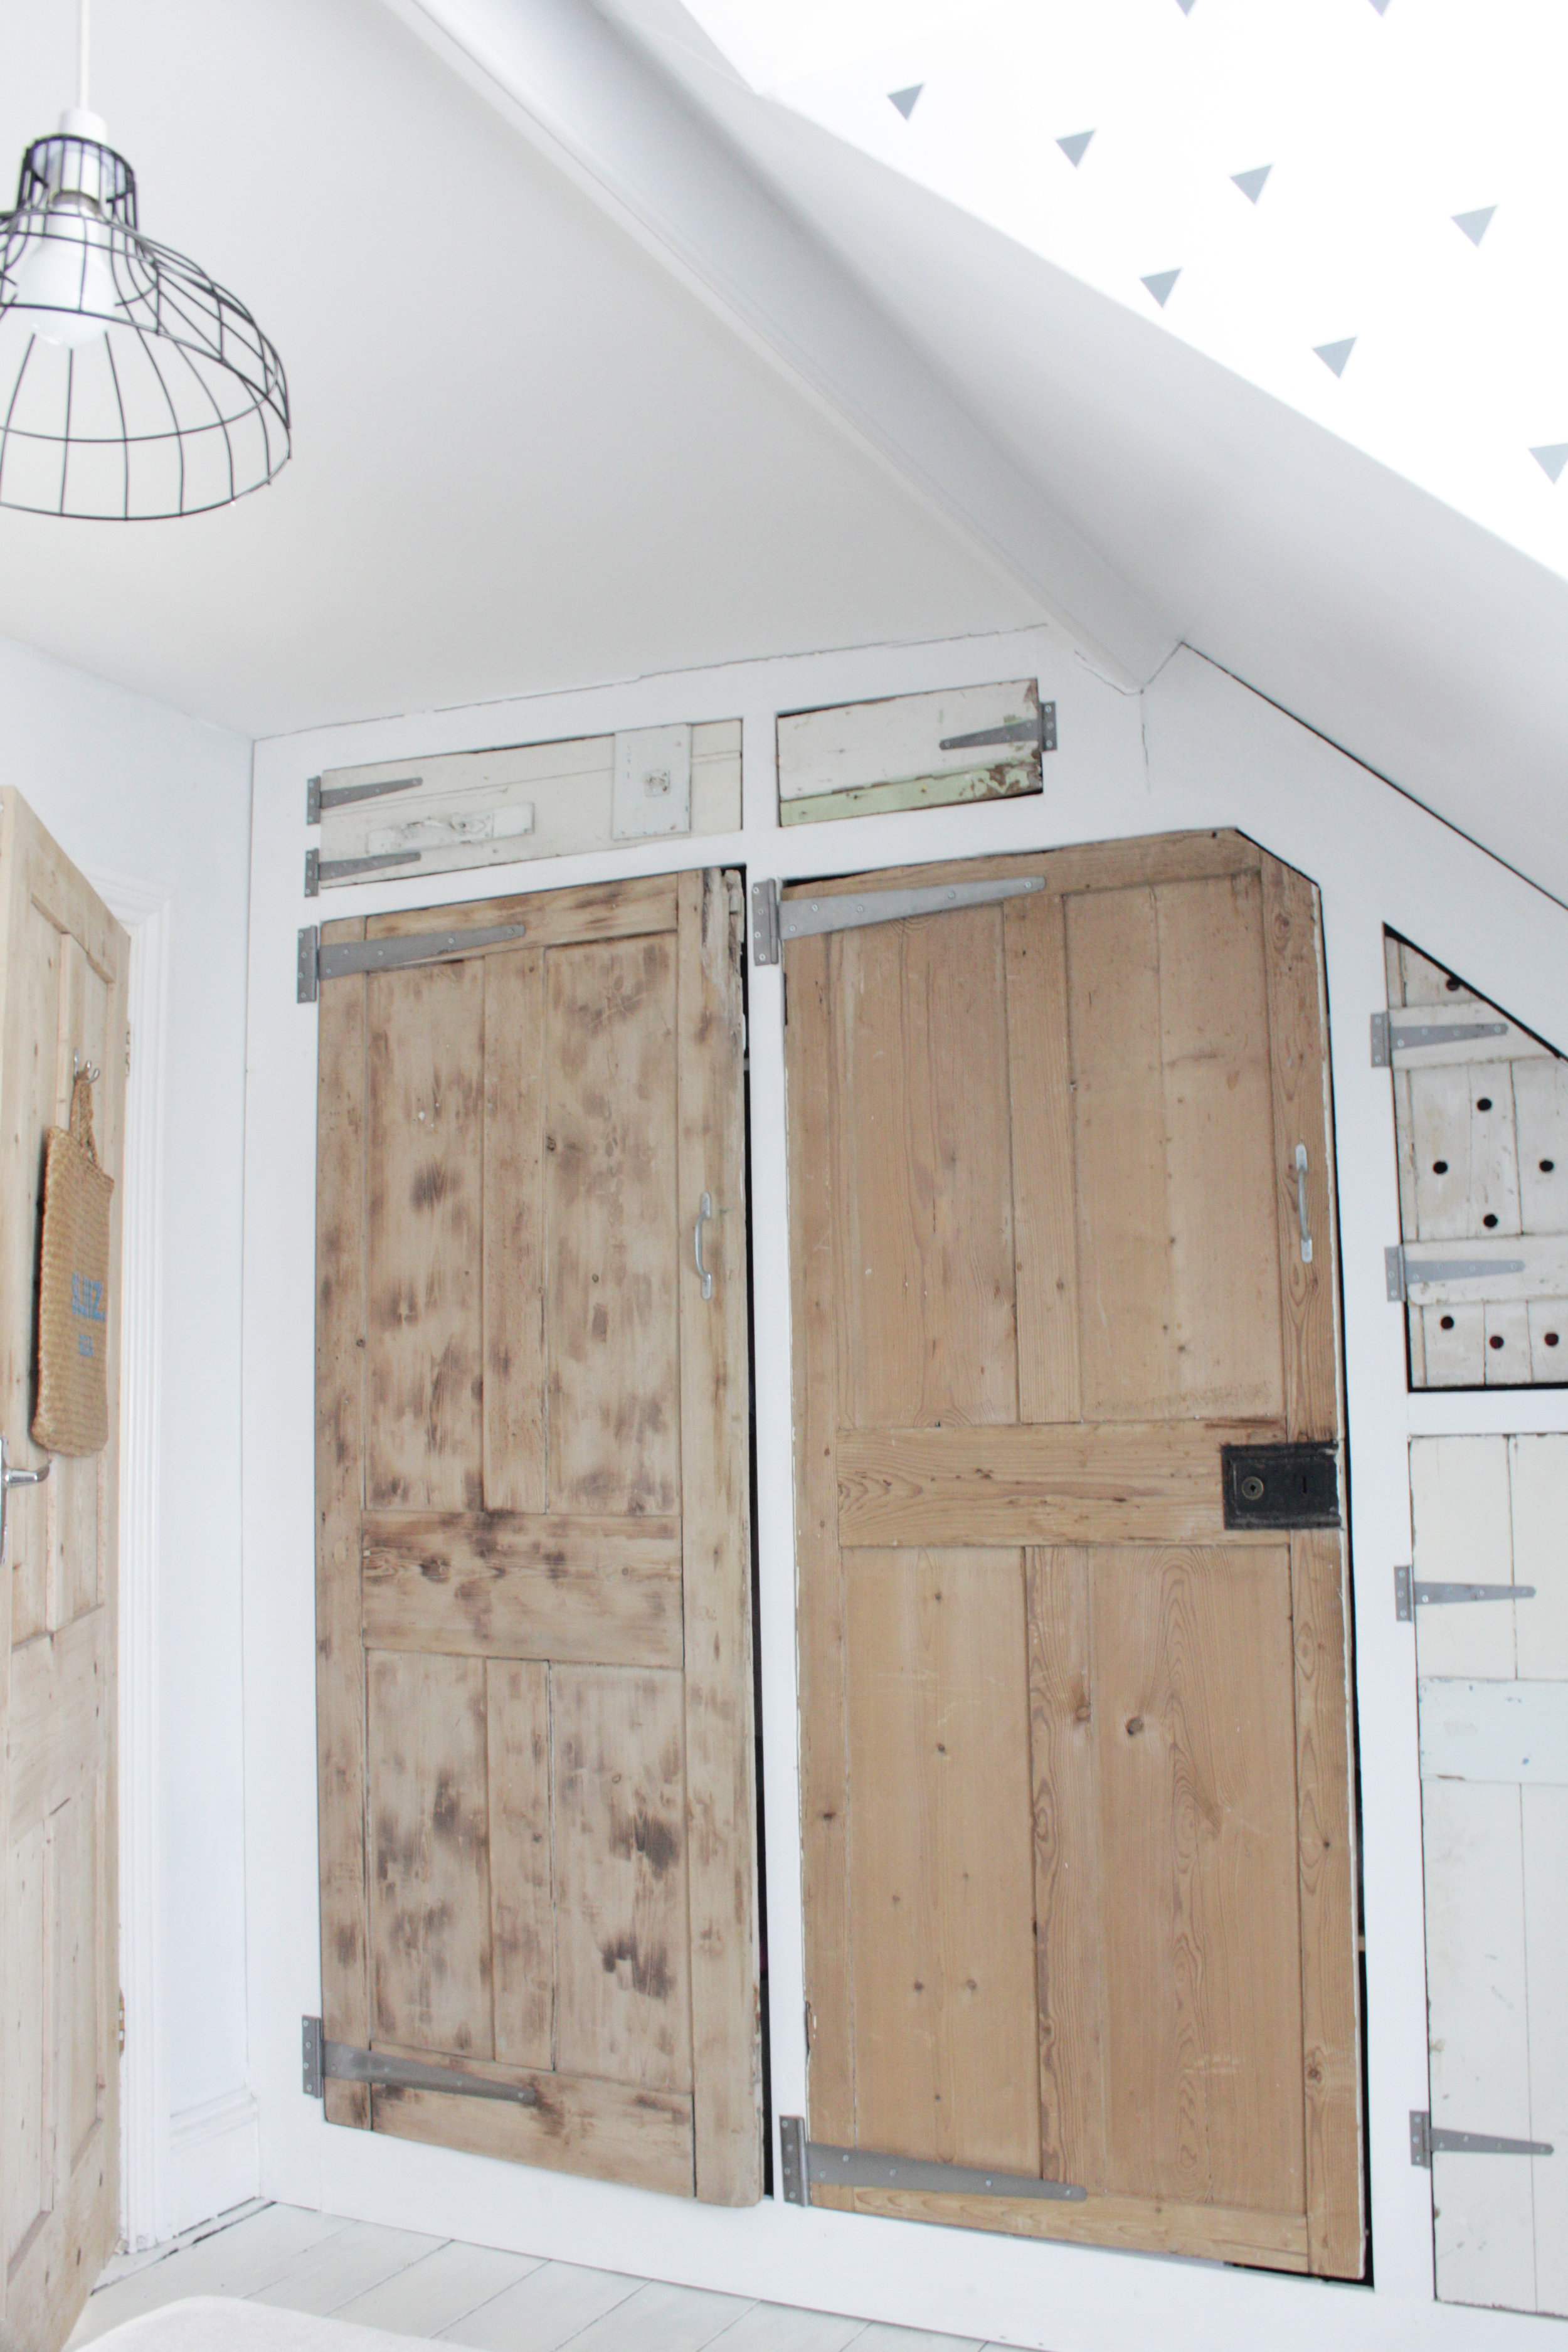 These reclaimed doors hide a lot of clutter